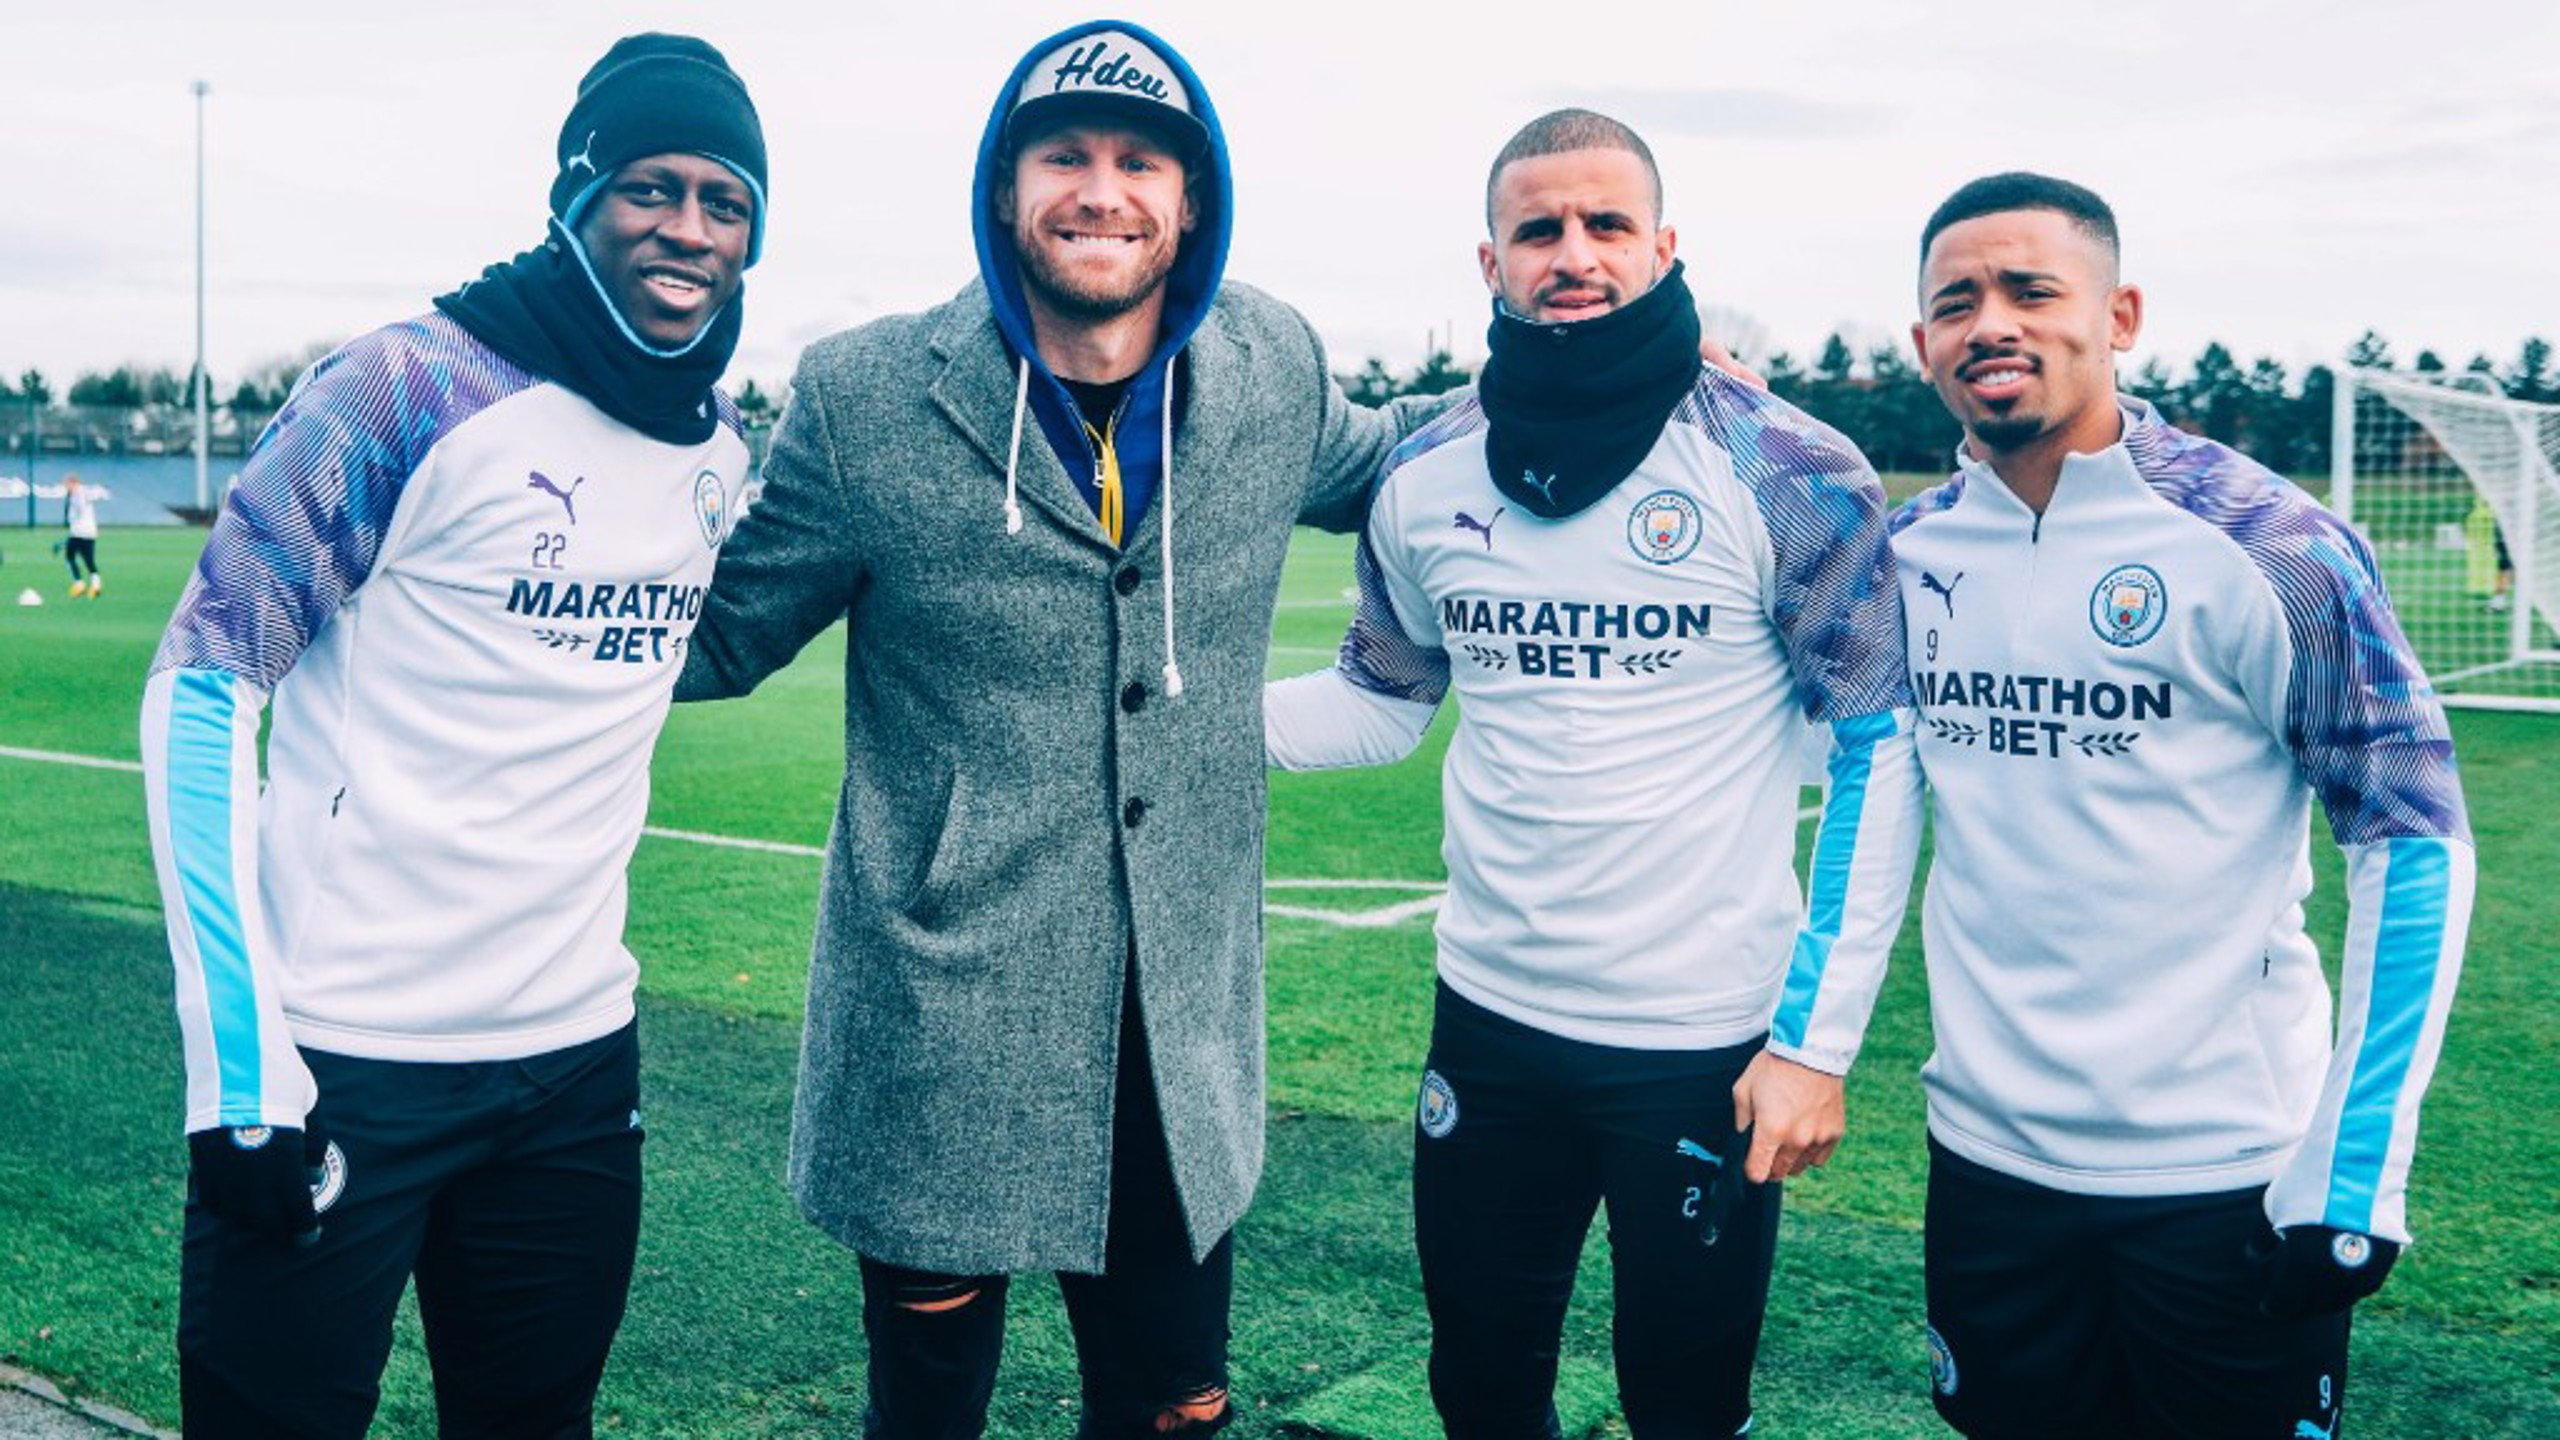 CITY BOYS: Benjamin Mendy, Kyle Walker and Gabriel Jesus stop for a photo with Chase Rice.